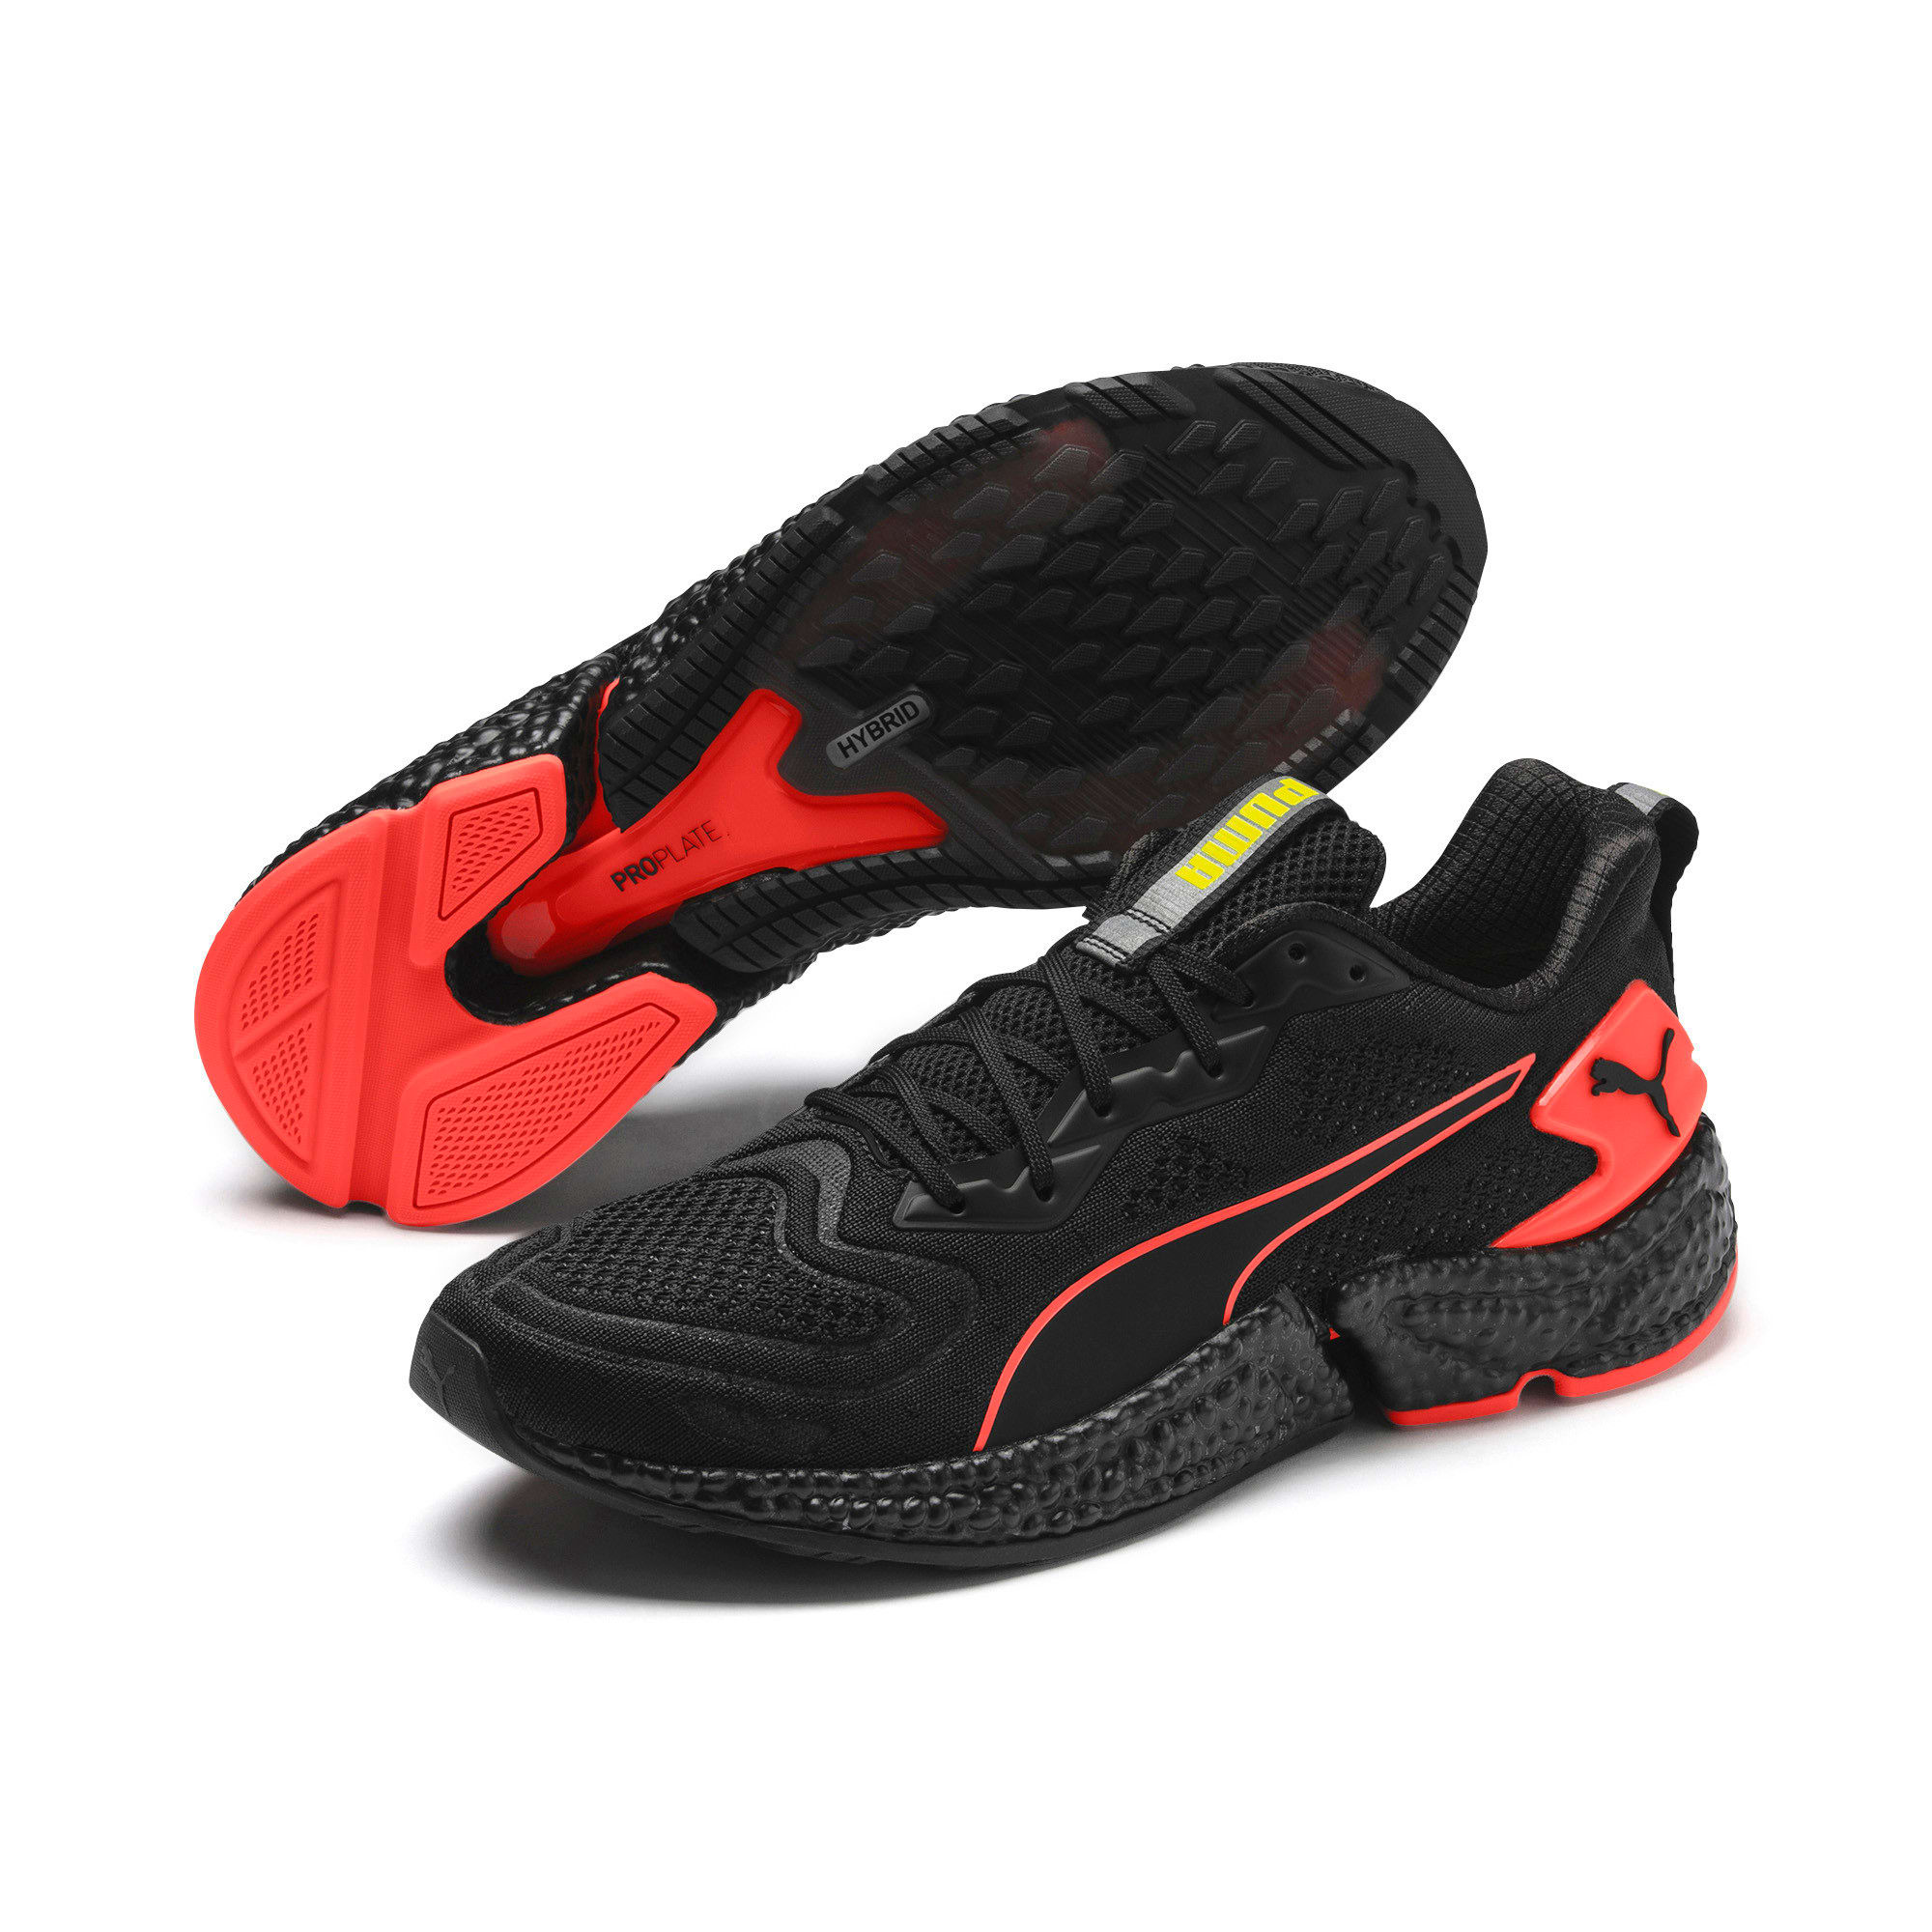 Thumbnail 3 of Chaussure de course HYBID SPEED Orbiter pour homme, Black-Nrgy Red-Yellow, medium